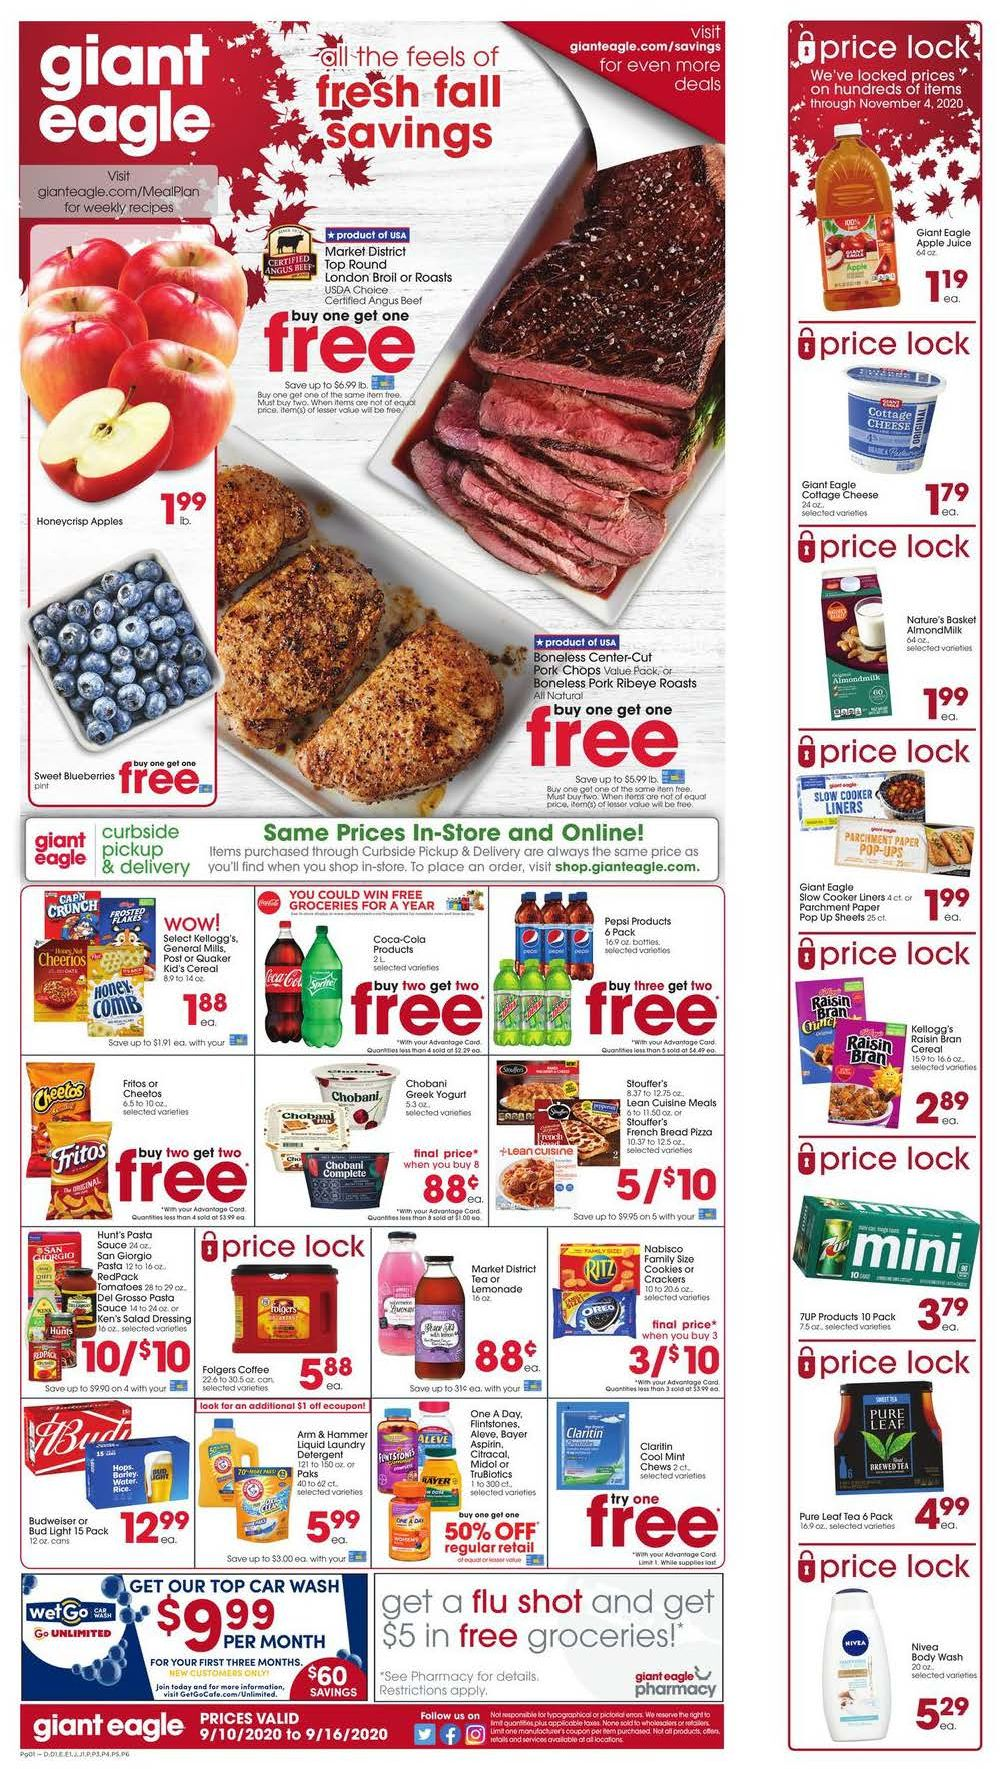 giant eagle mid september weekly ad valid from sep 10 16 2020